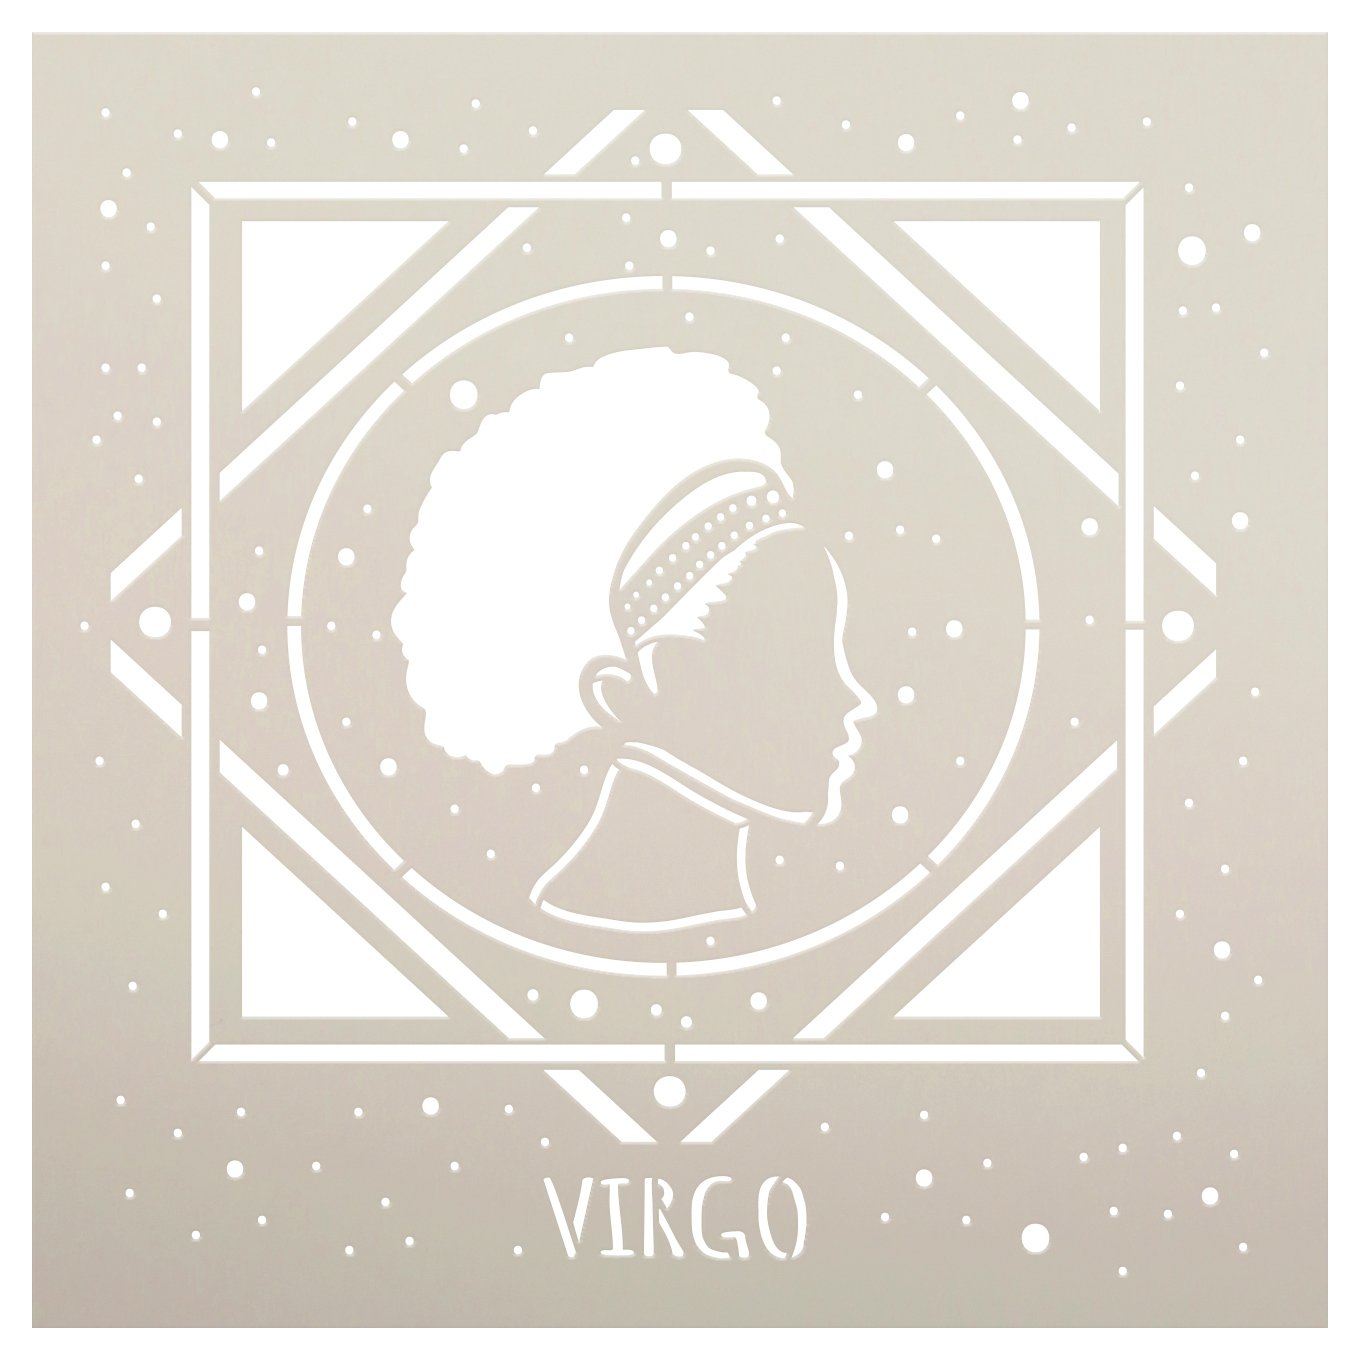 Virgo Zodiac Stencil by StudioR12   DIY Star Sign Celestial Bedroom & Home Decor   Craft & Paint Astrological Wood Signs   Select Size